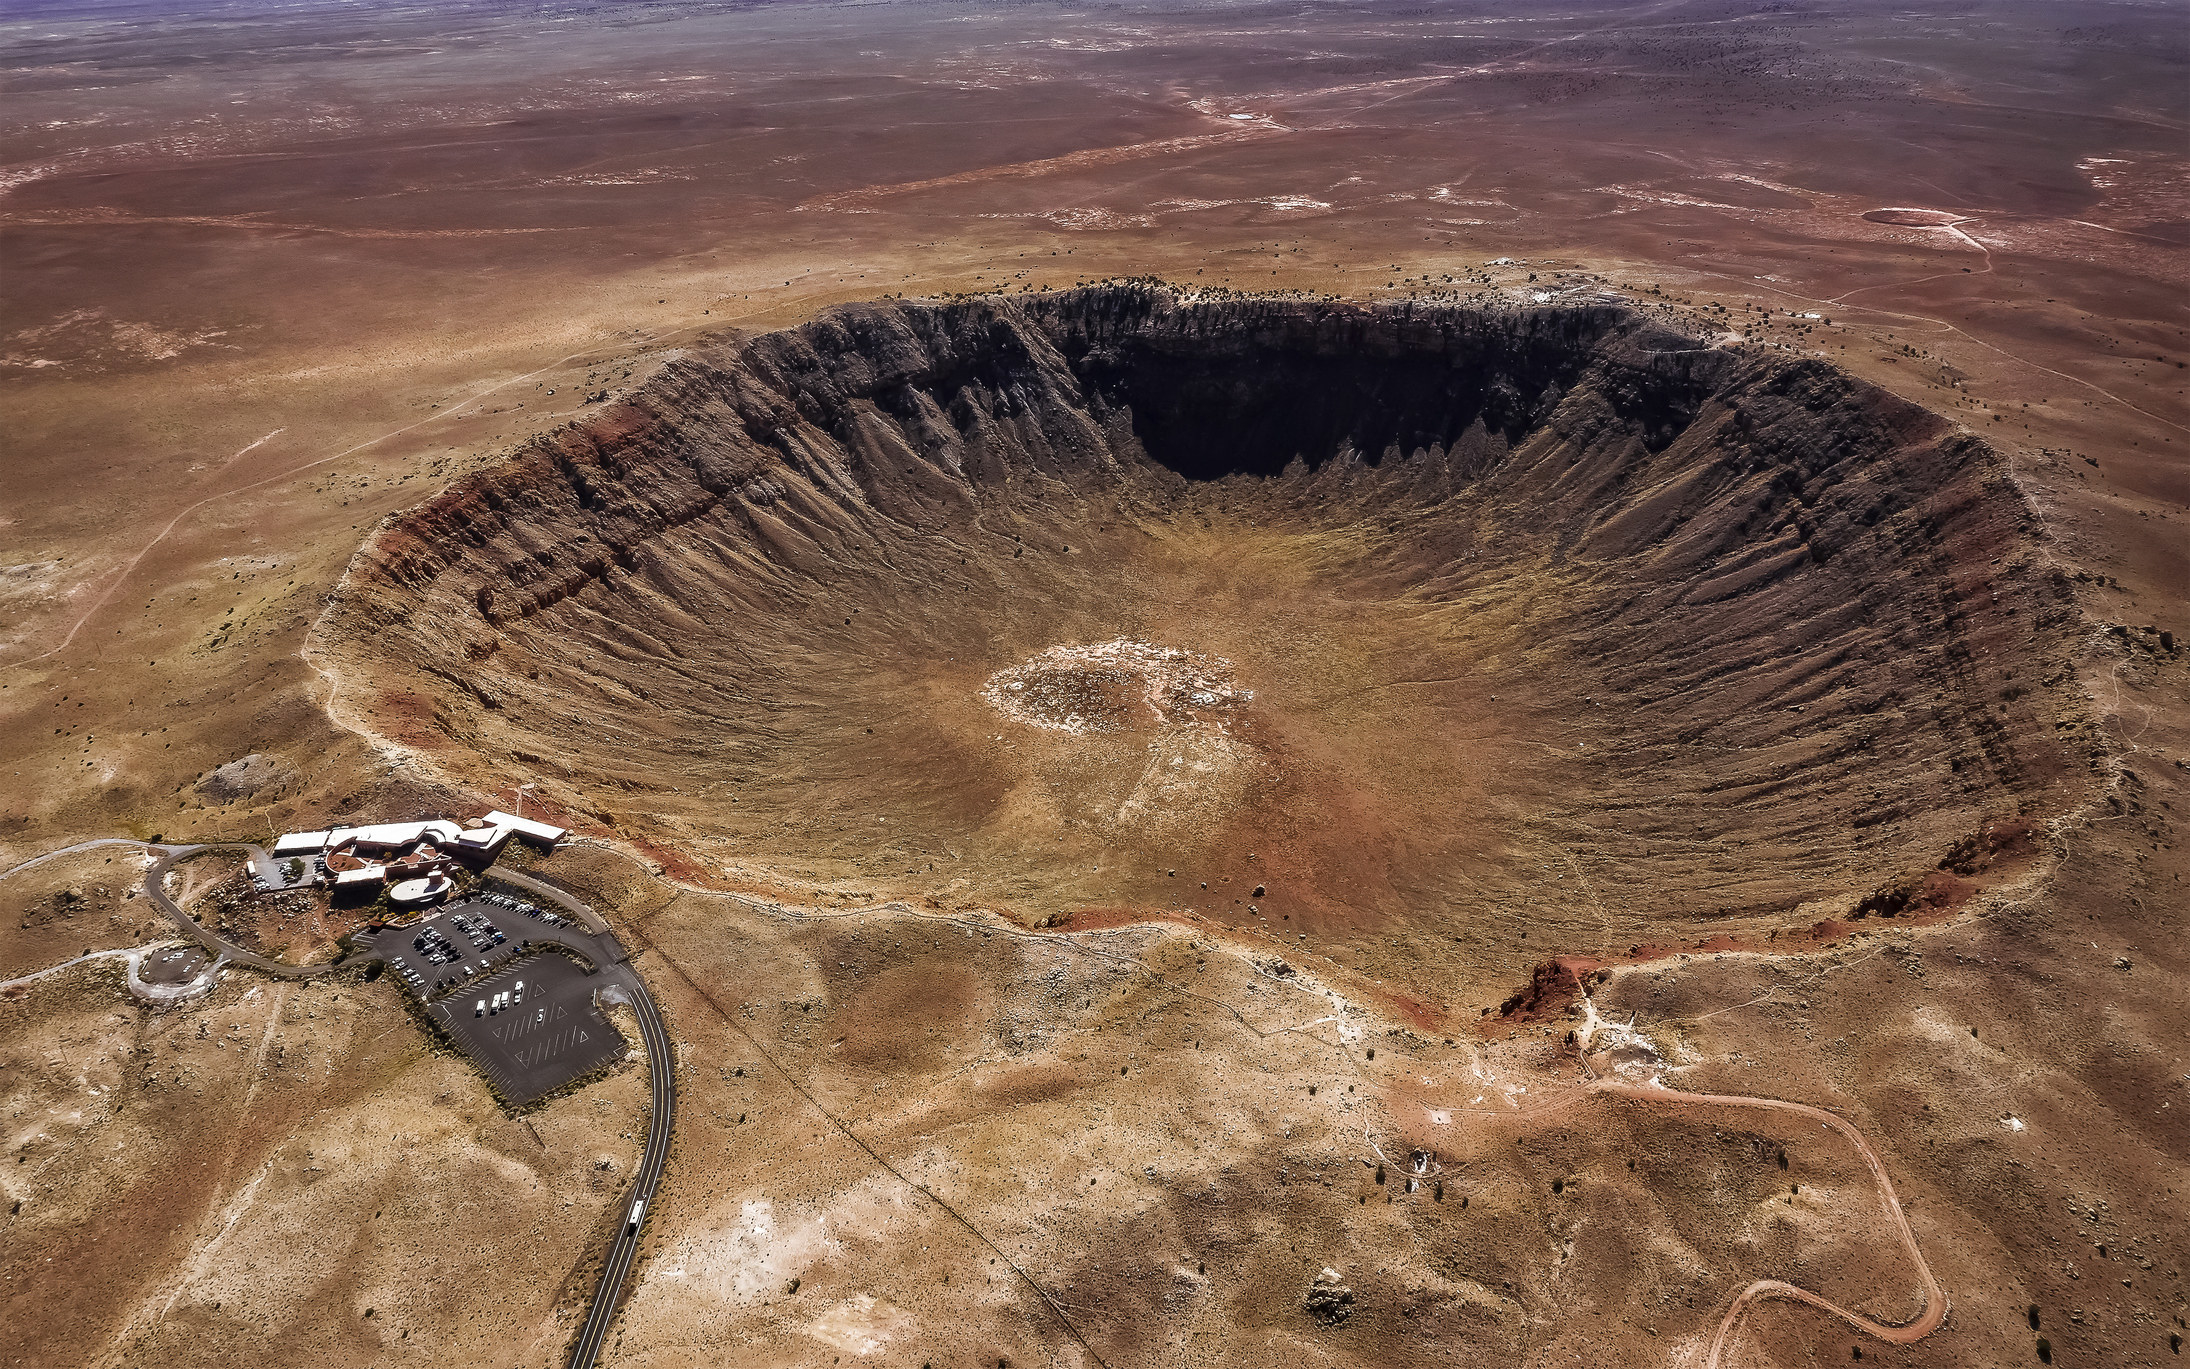 bird's-eye view of a giant crater with rippled edges in the ground